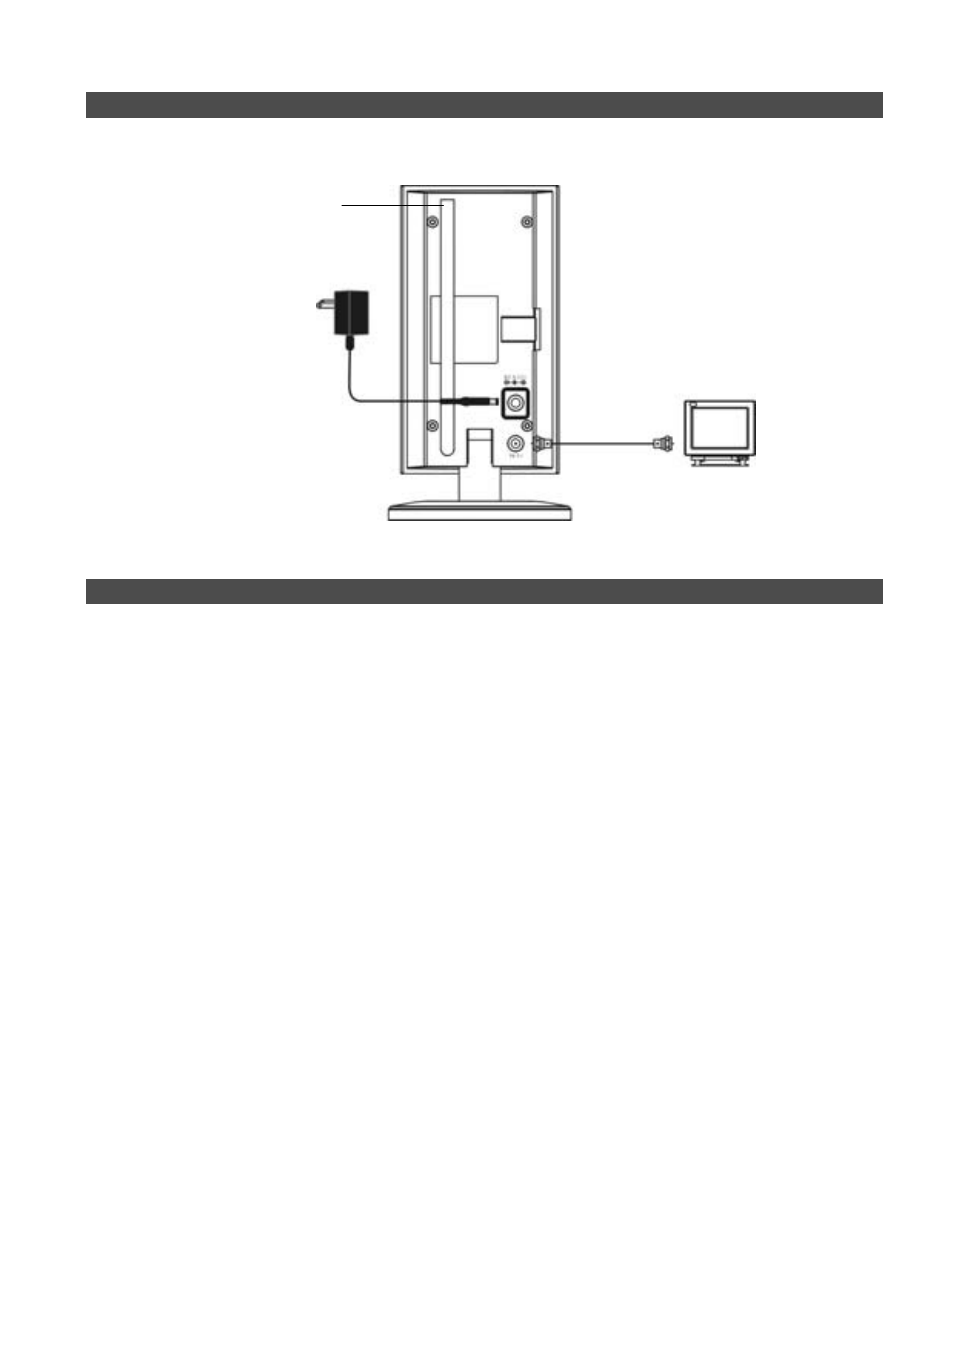 ge 24746 ge futura tv antenna user manual page 4 4 original mode rh manualsdir com GE Coaxial Cable Coaxial Audio Cable